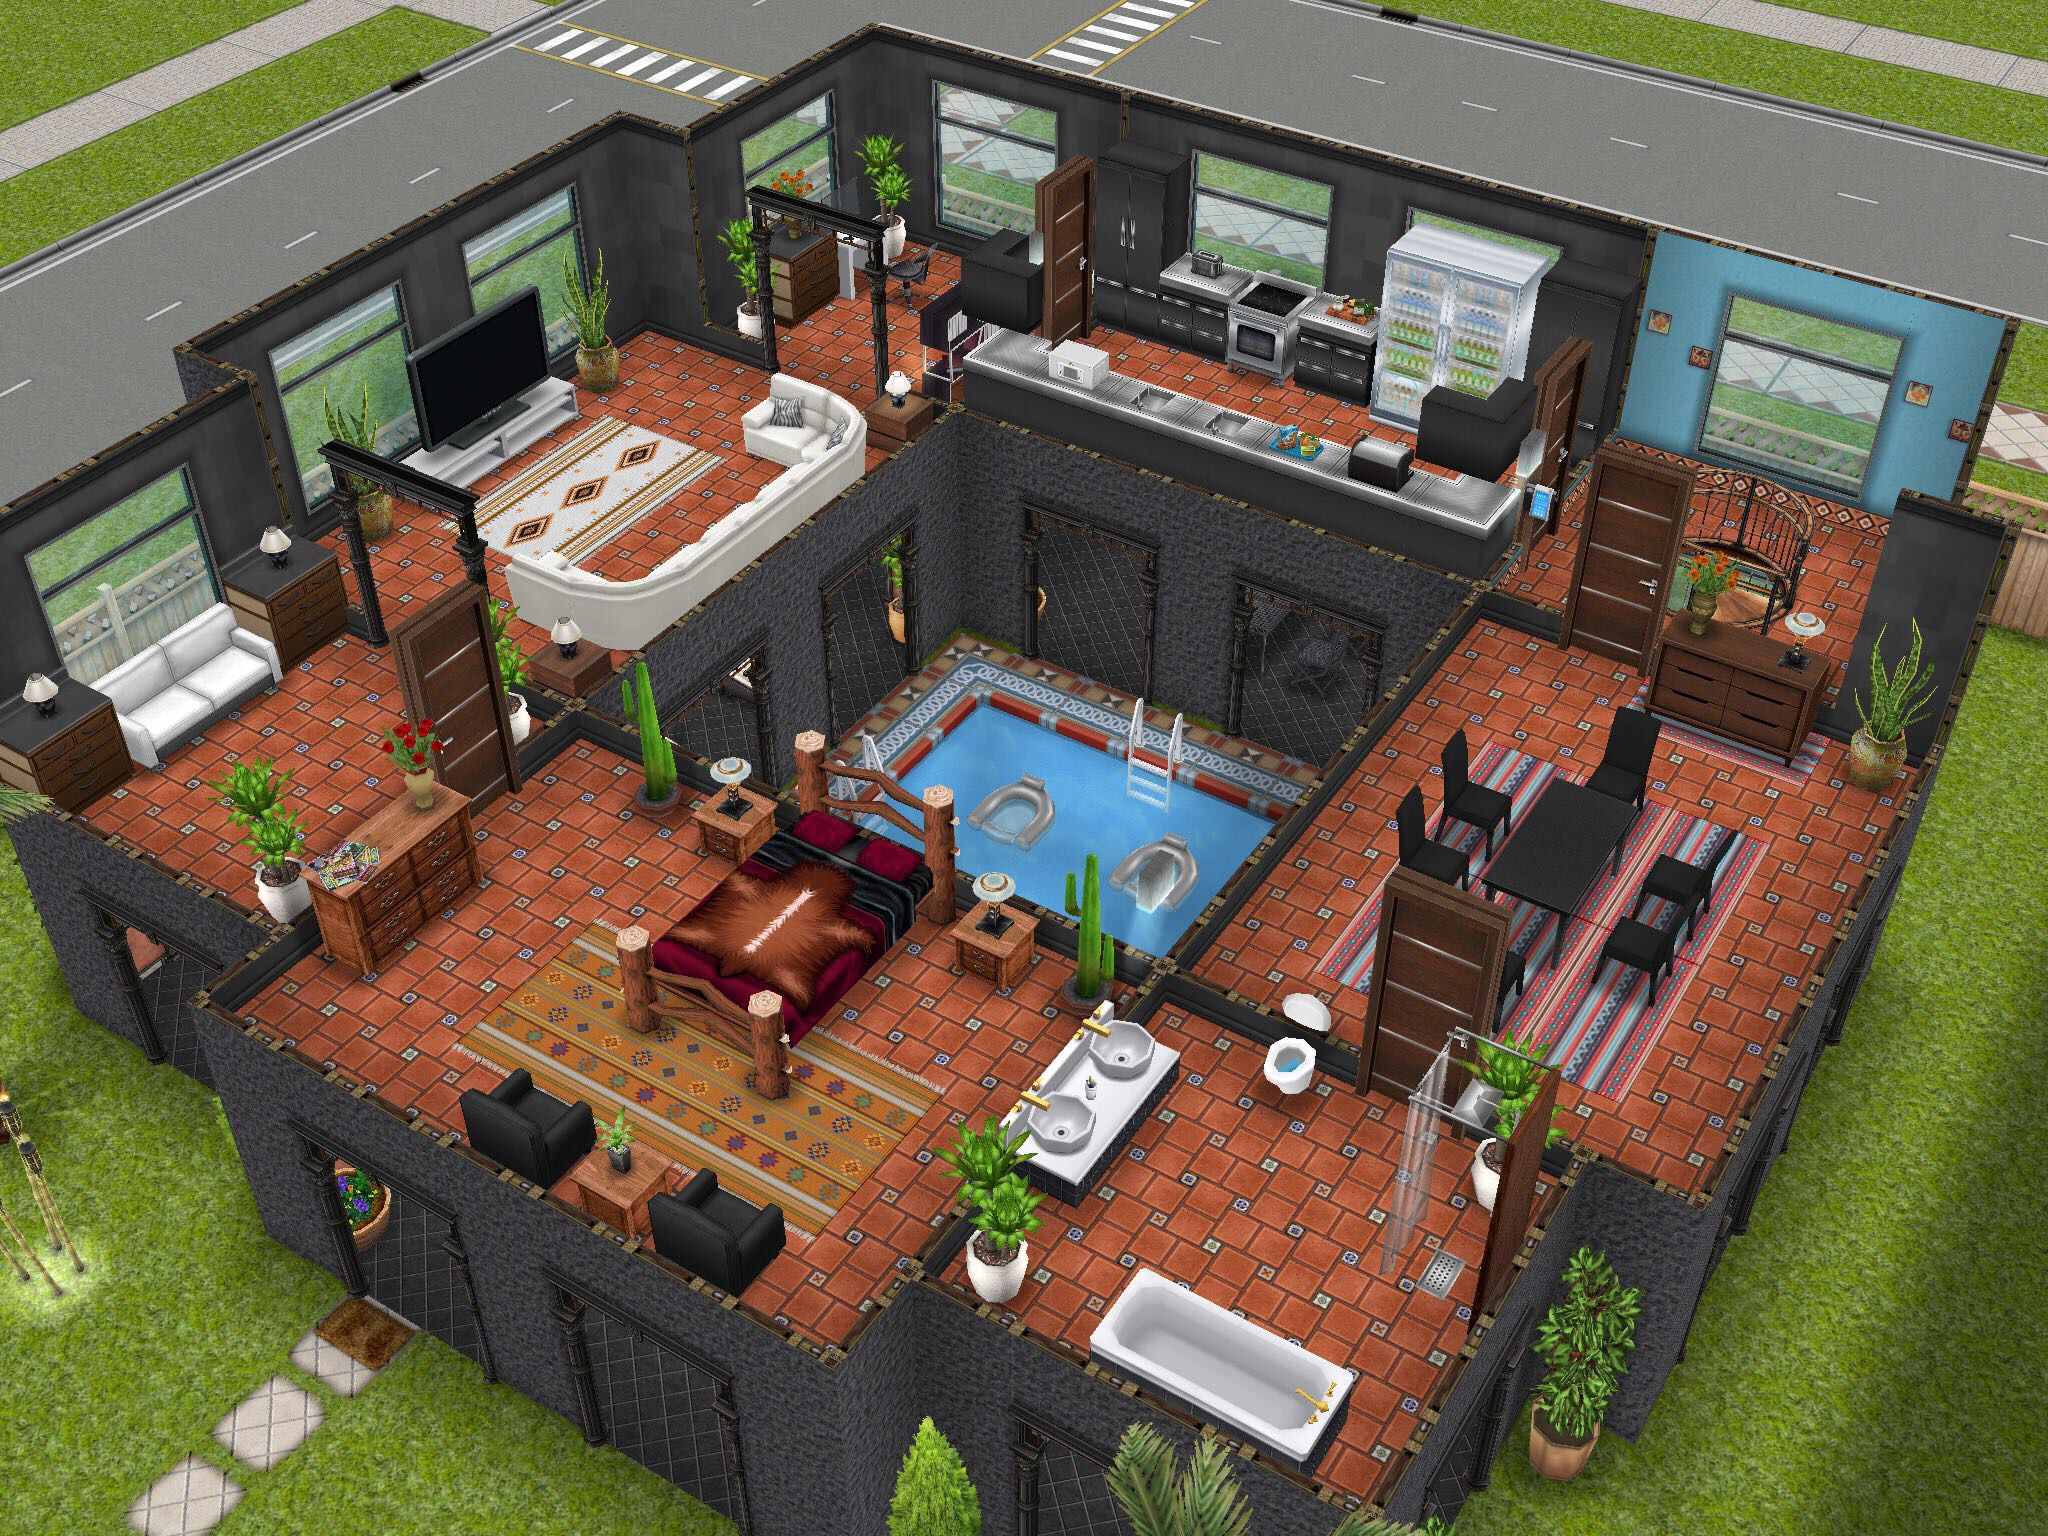 Variation on stilts house design i saw on pinterest for Sims 2 house designs floor plans